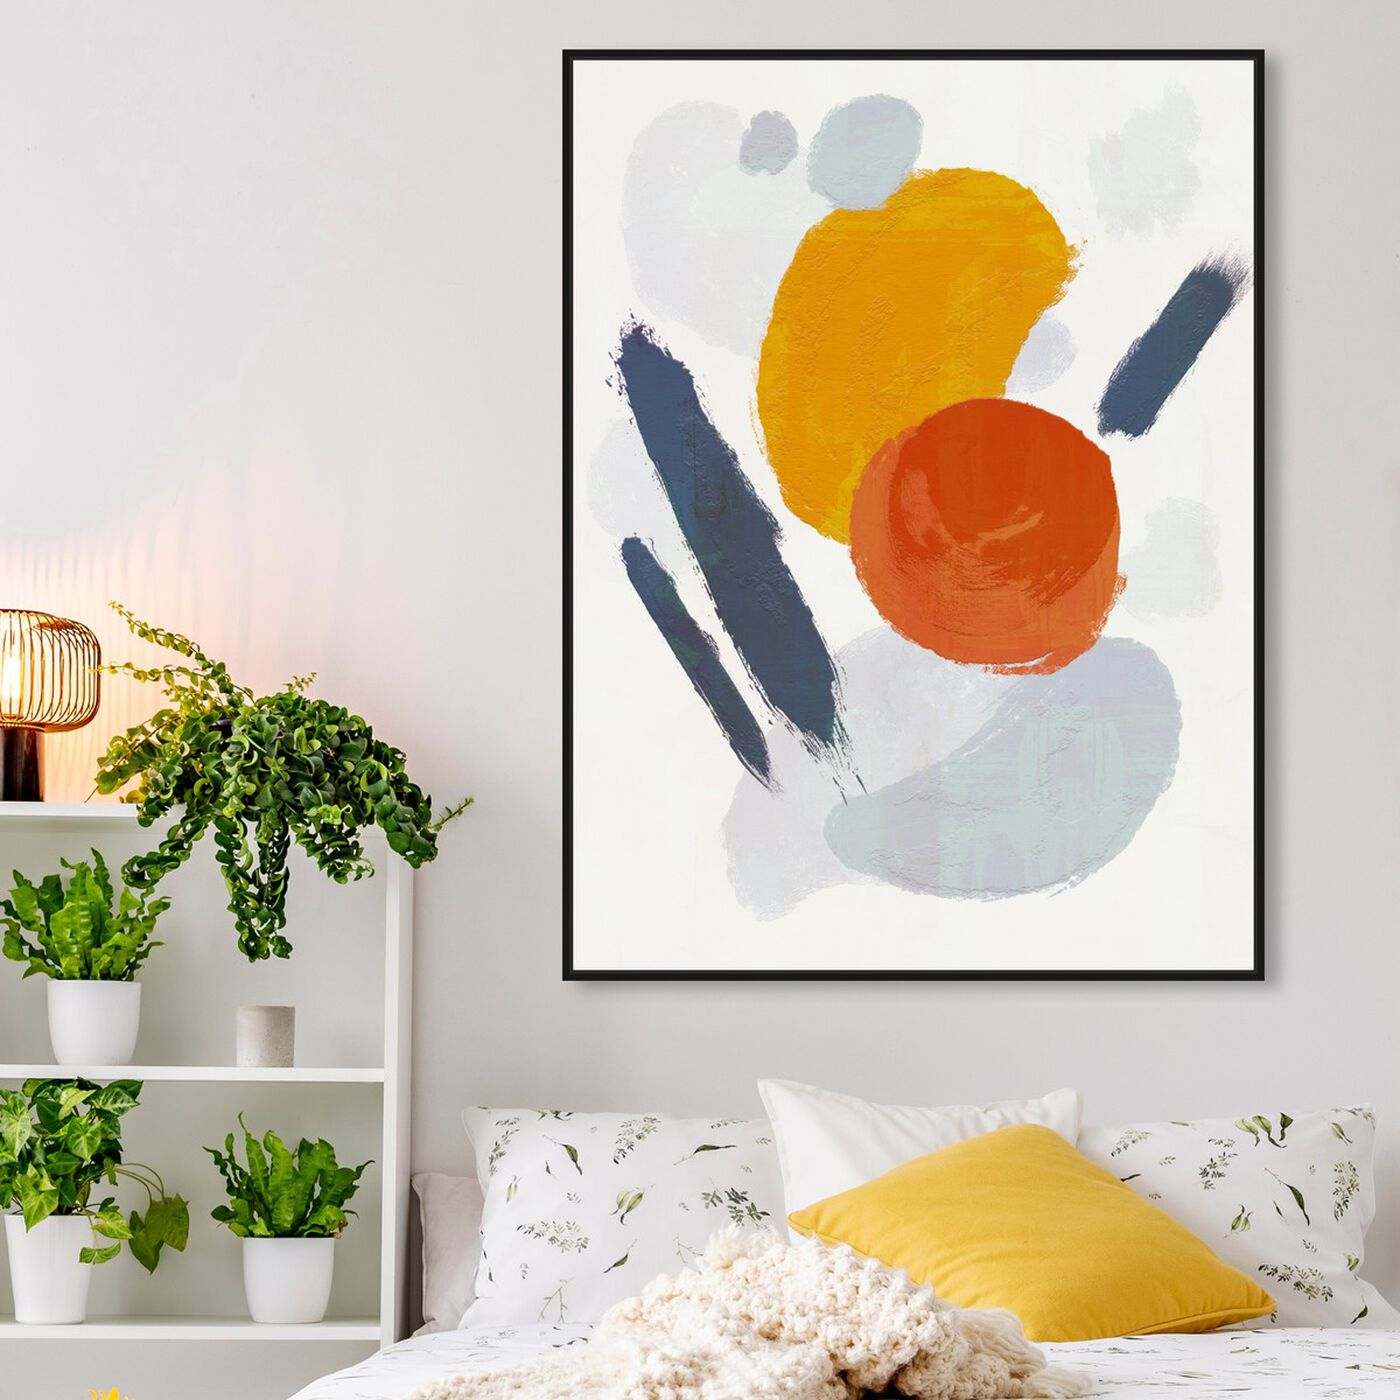 Hanging view of Blanc Order featuring abstract and paint art.